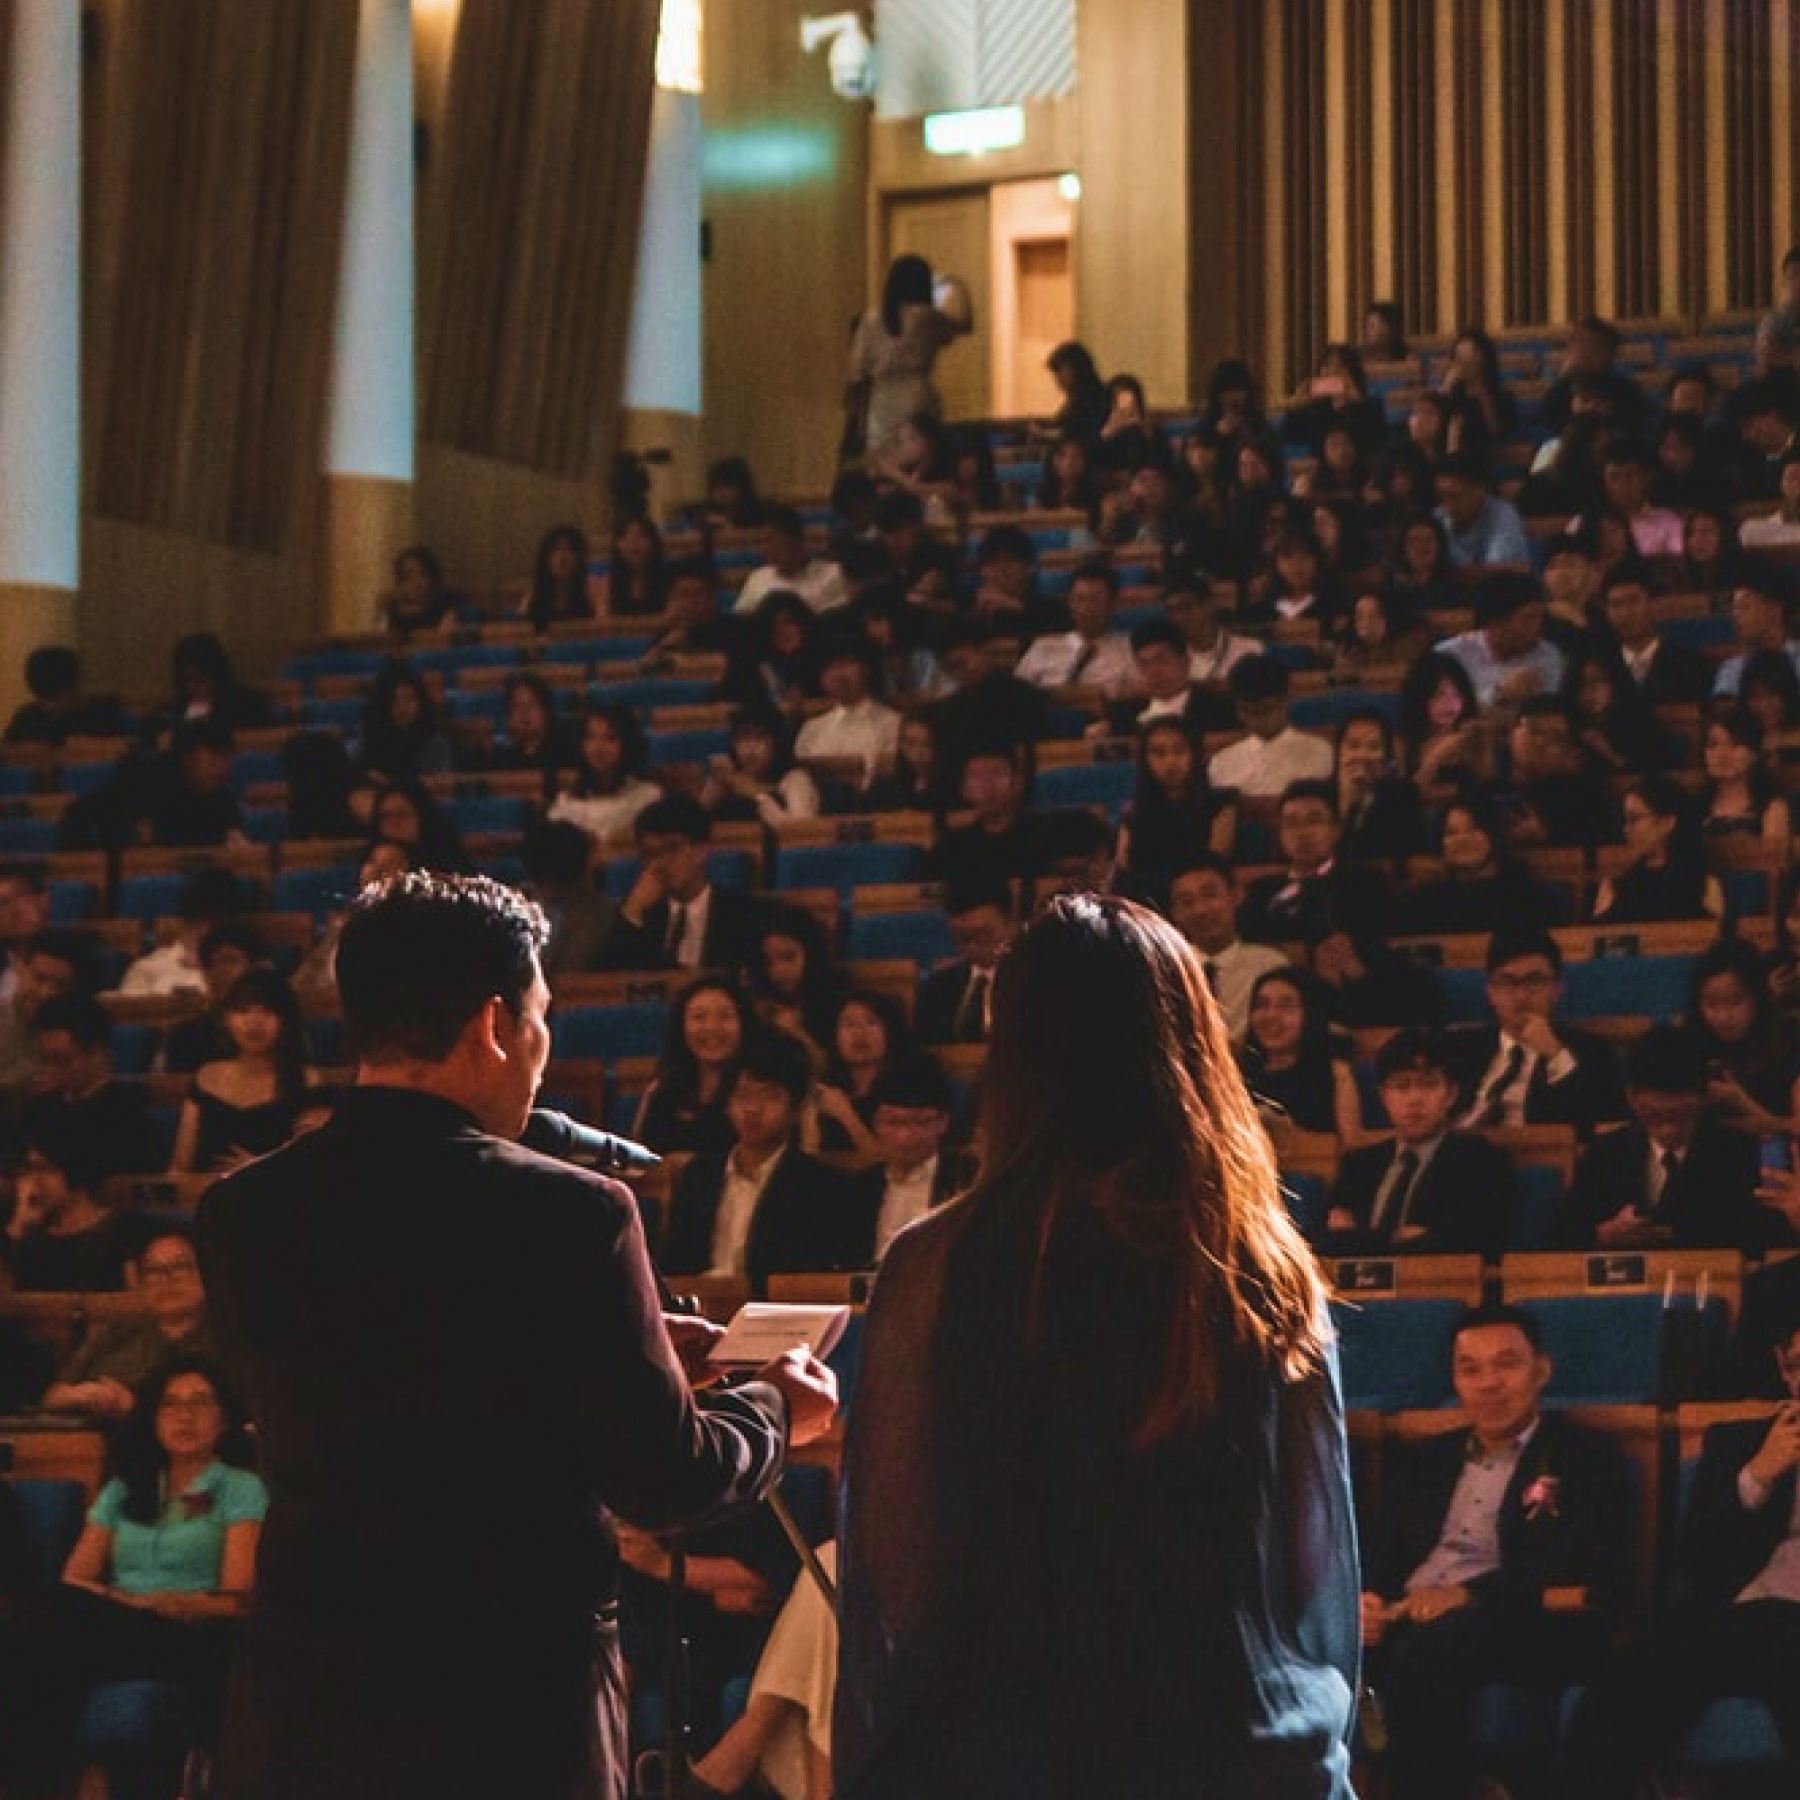 An educator speaking at a lecture.